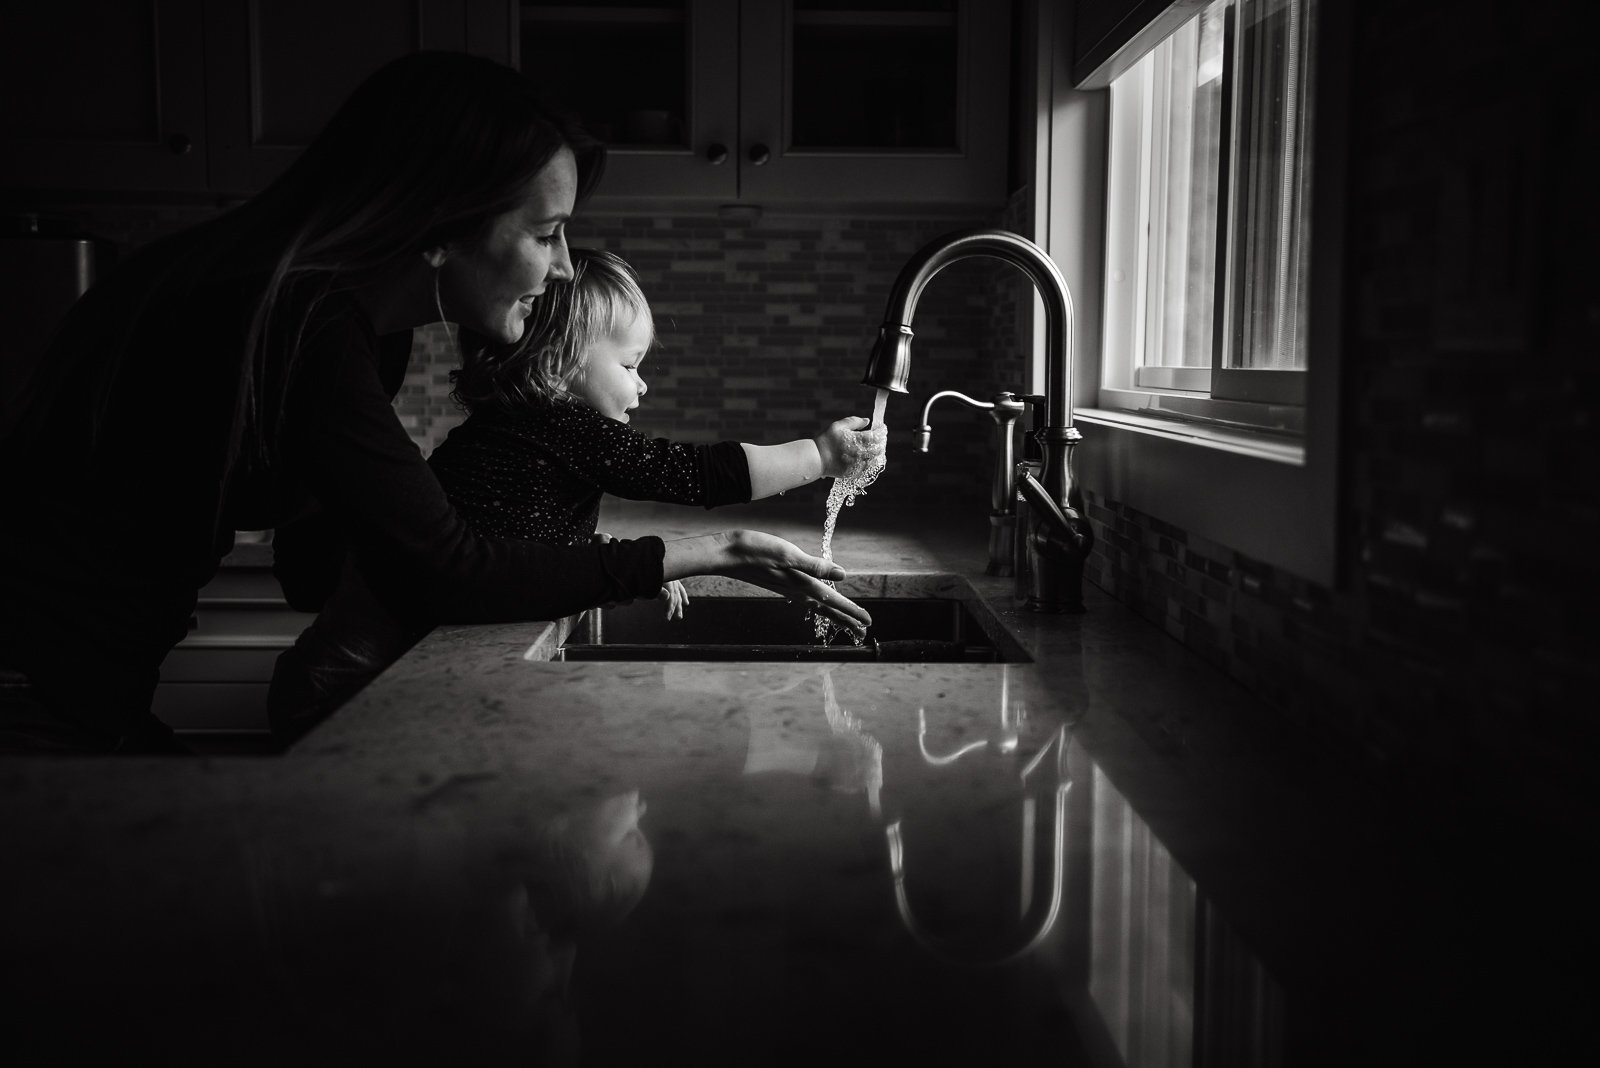 Mother helping child wash hands